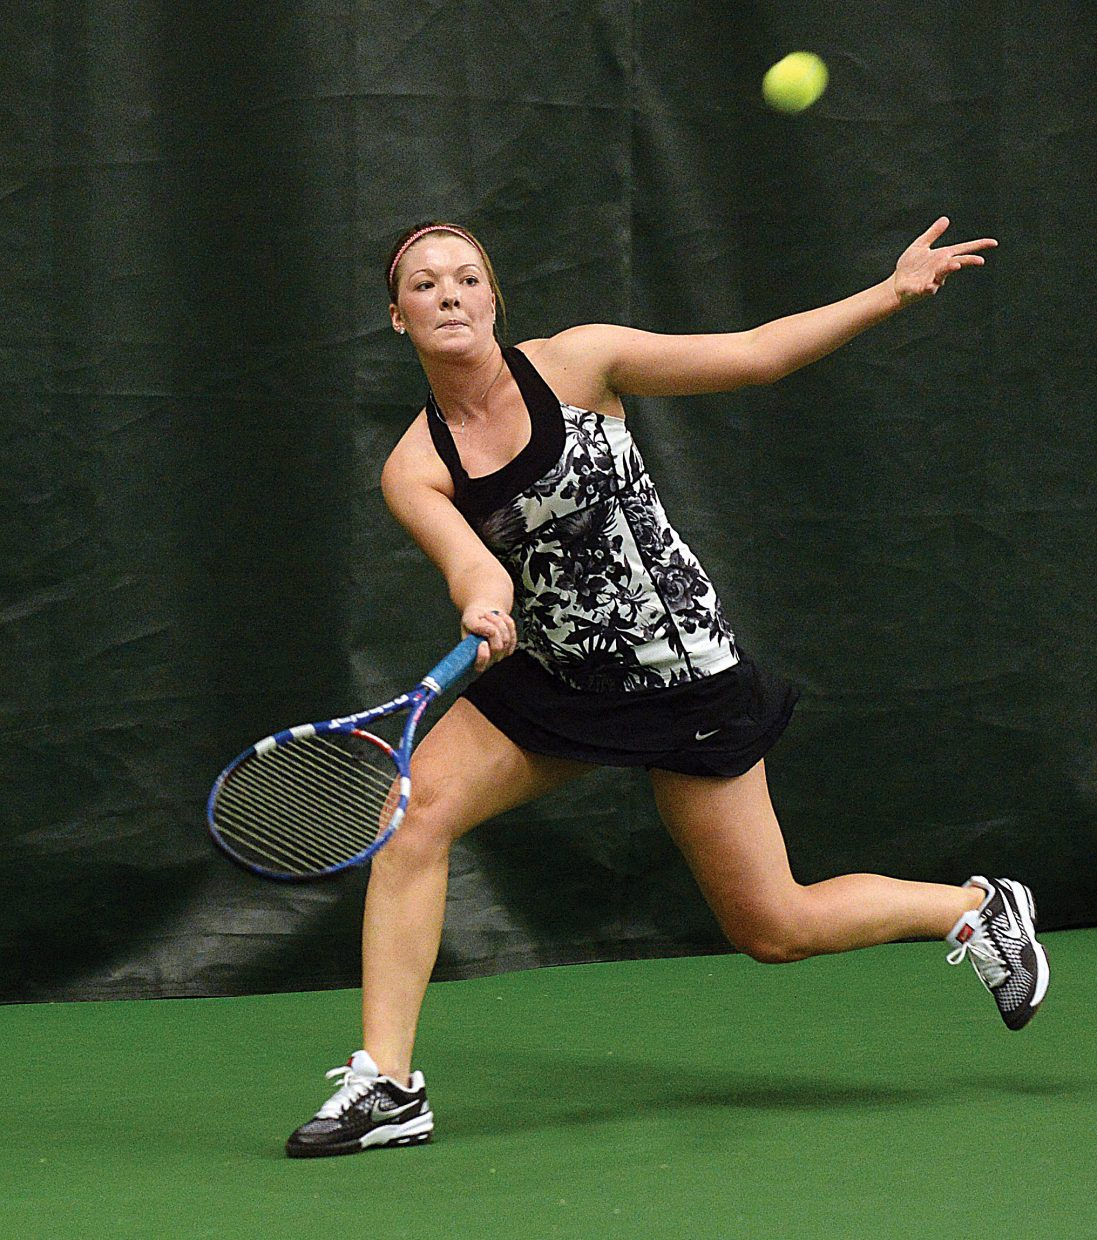 Ellie Bender returns a shot during a match against Vail Mountain's Courtney Thomas on Tuesday afternoon at the Tennis Center at Steamboat Springs. Bender won the match, 6-3, 6-4, and the Sailors swept the Gore Rangers, 7-0.